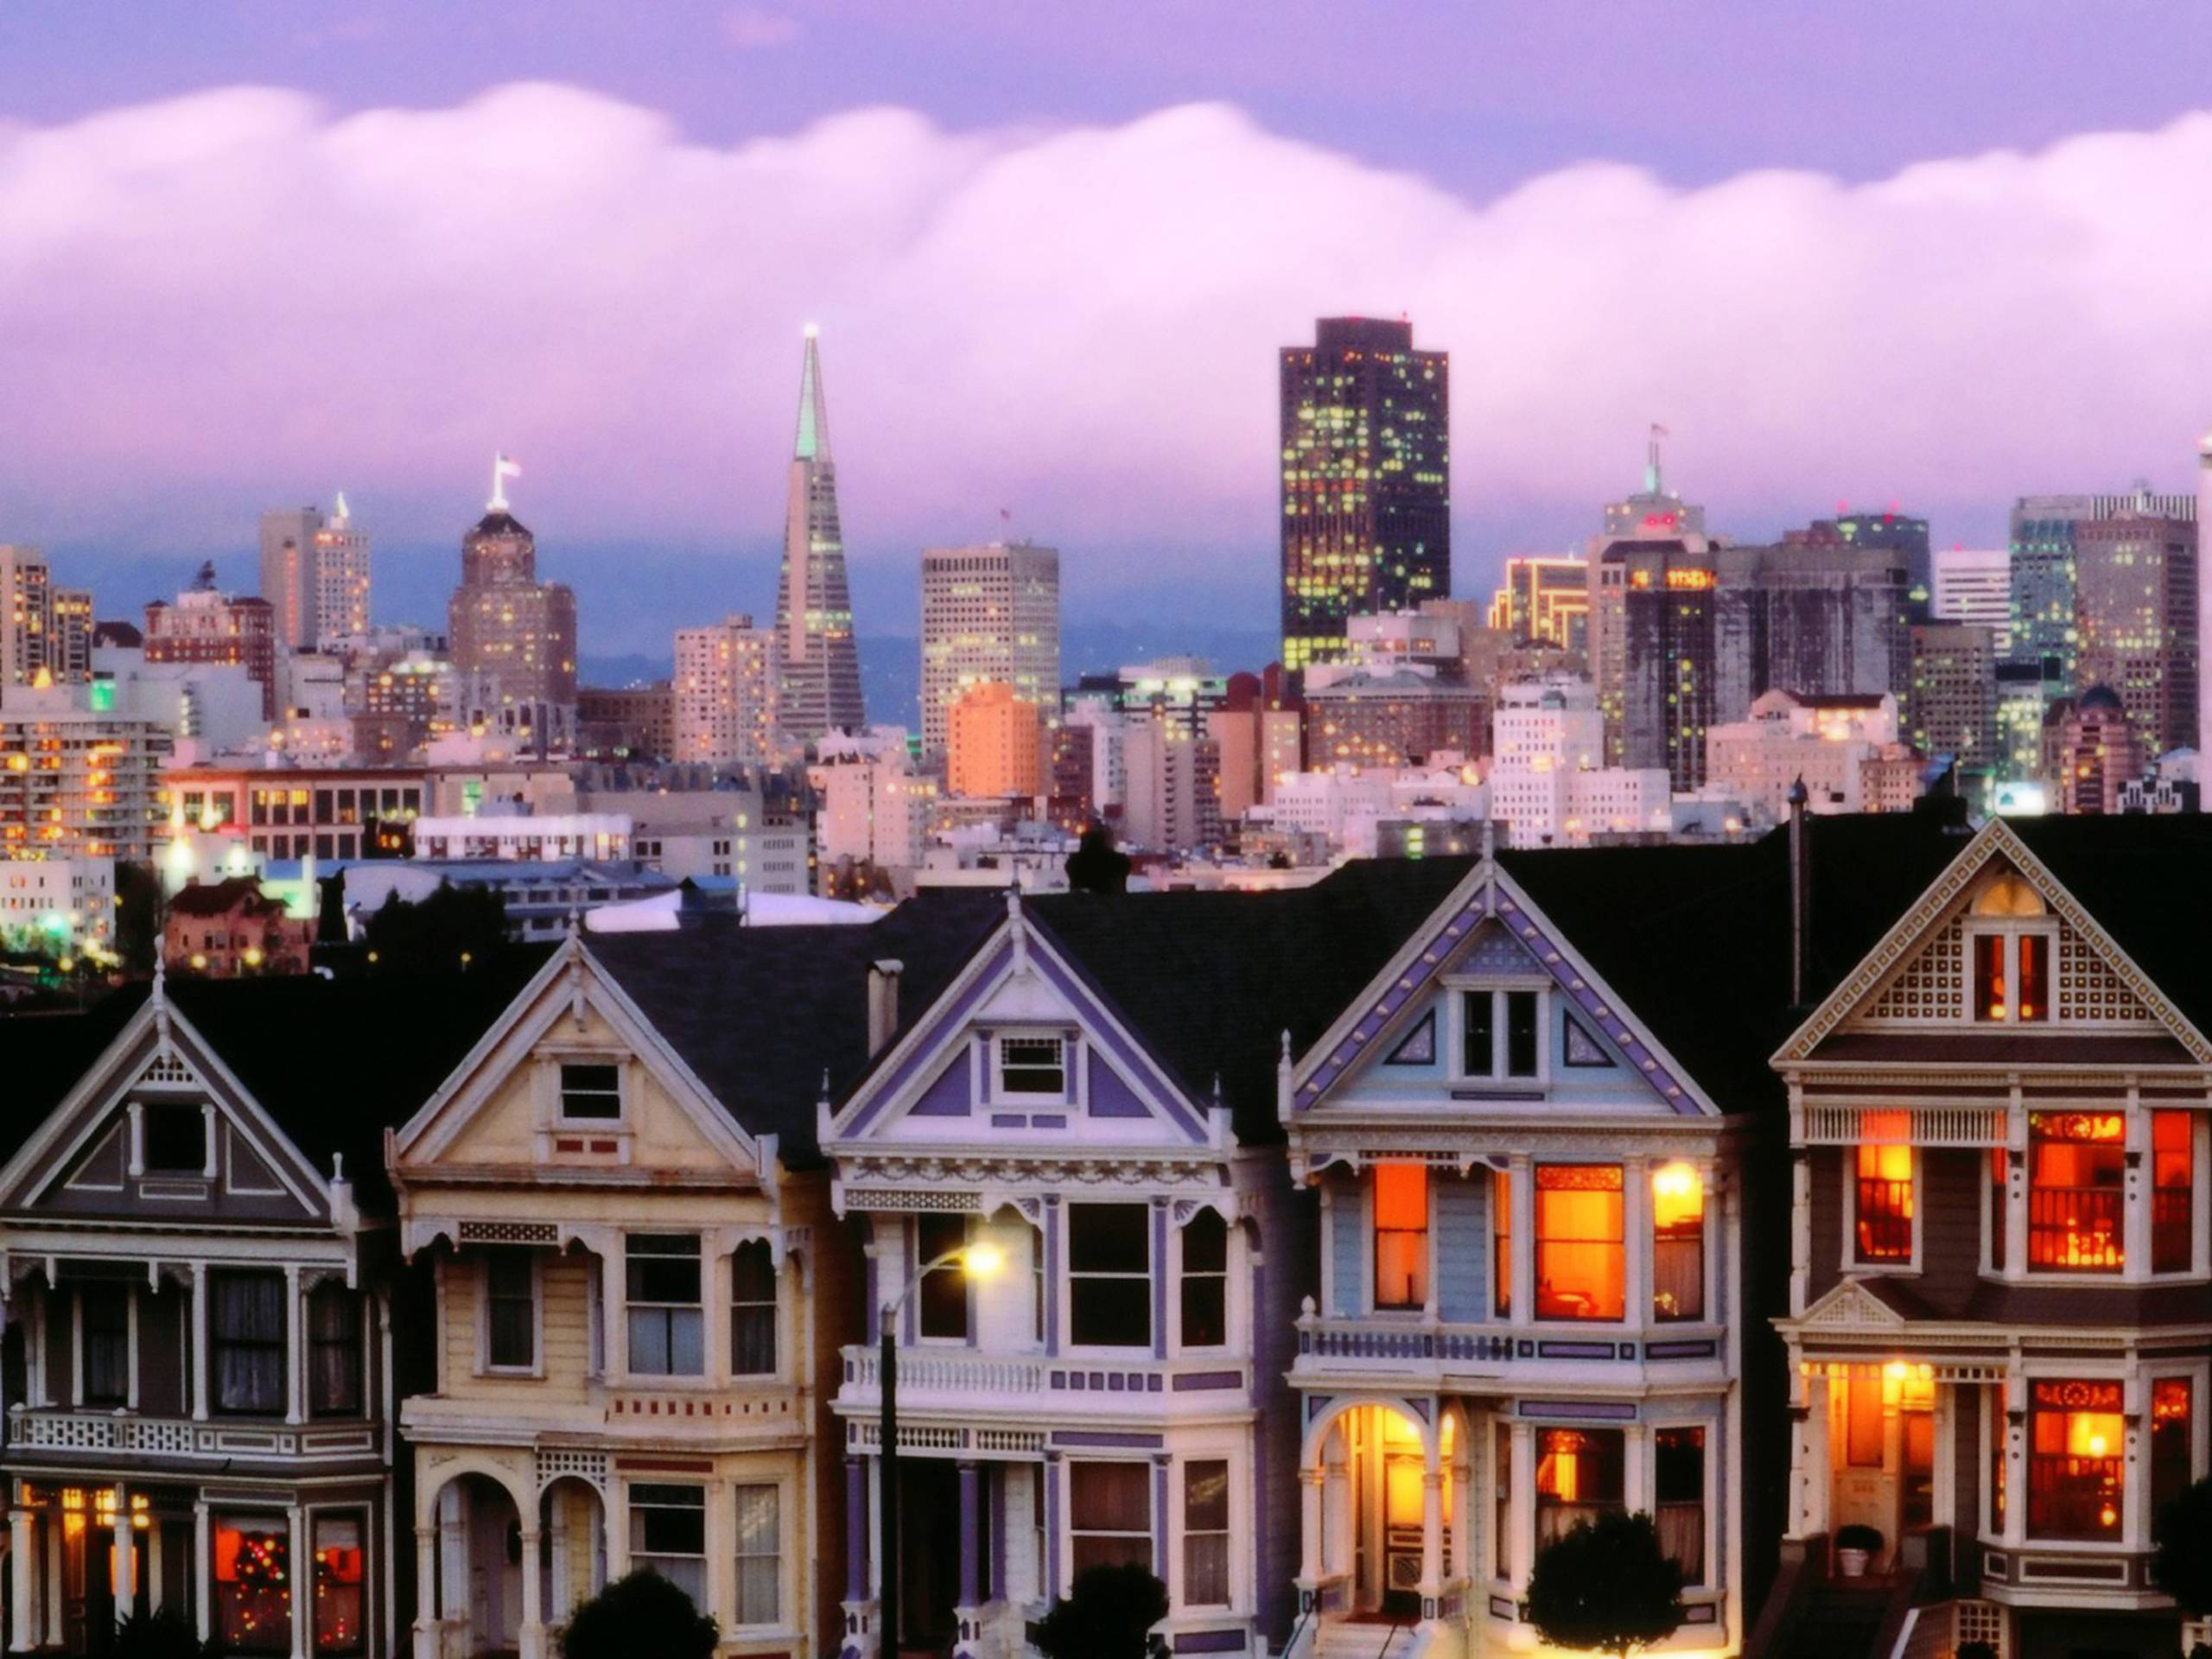 San Francisco TheWallpapers | Free Desktop Wallpapers for HD ...